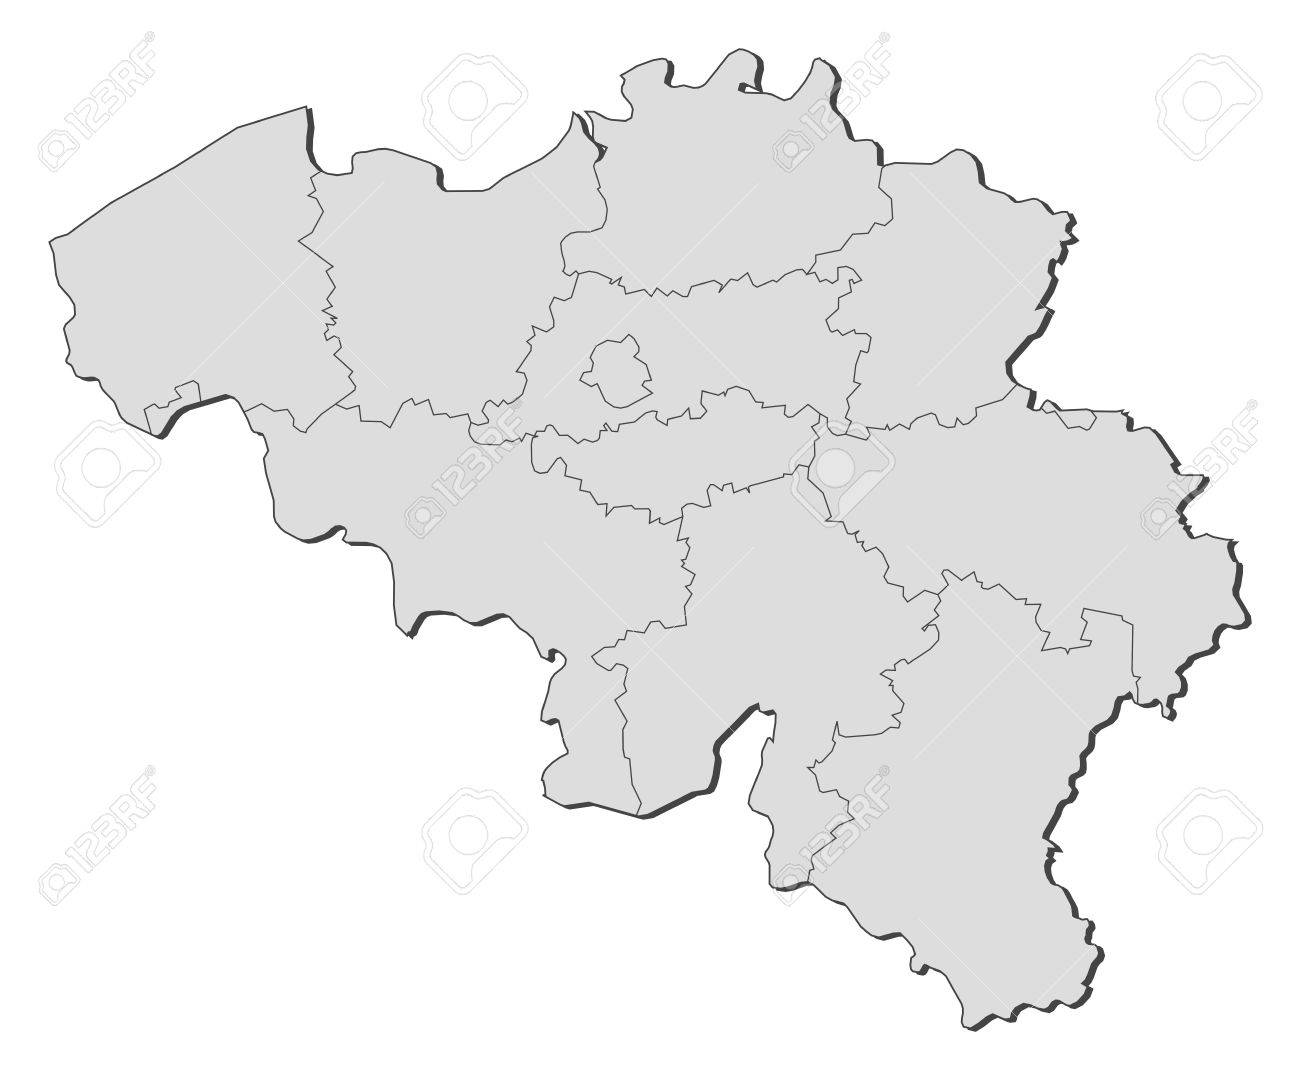 Maps Update 13221120 Beligium Map Map of Belgium Belgium – Map of Belguim